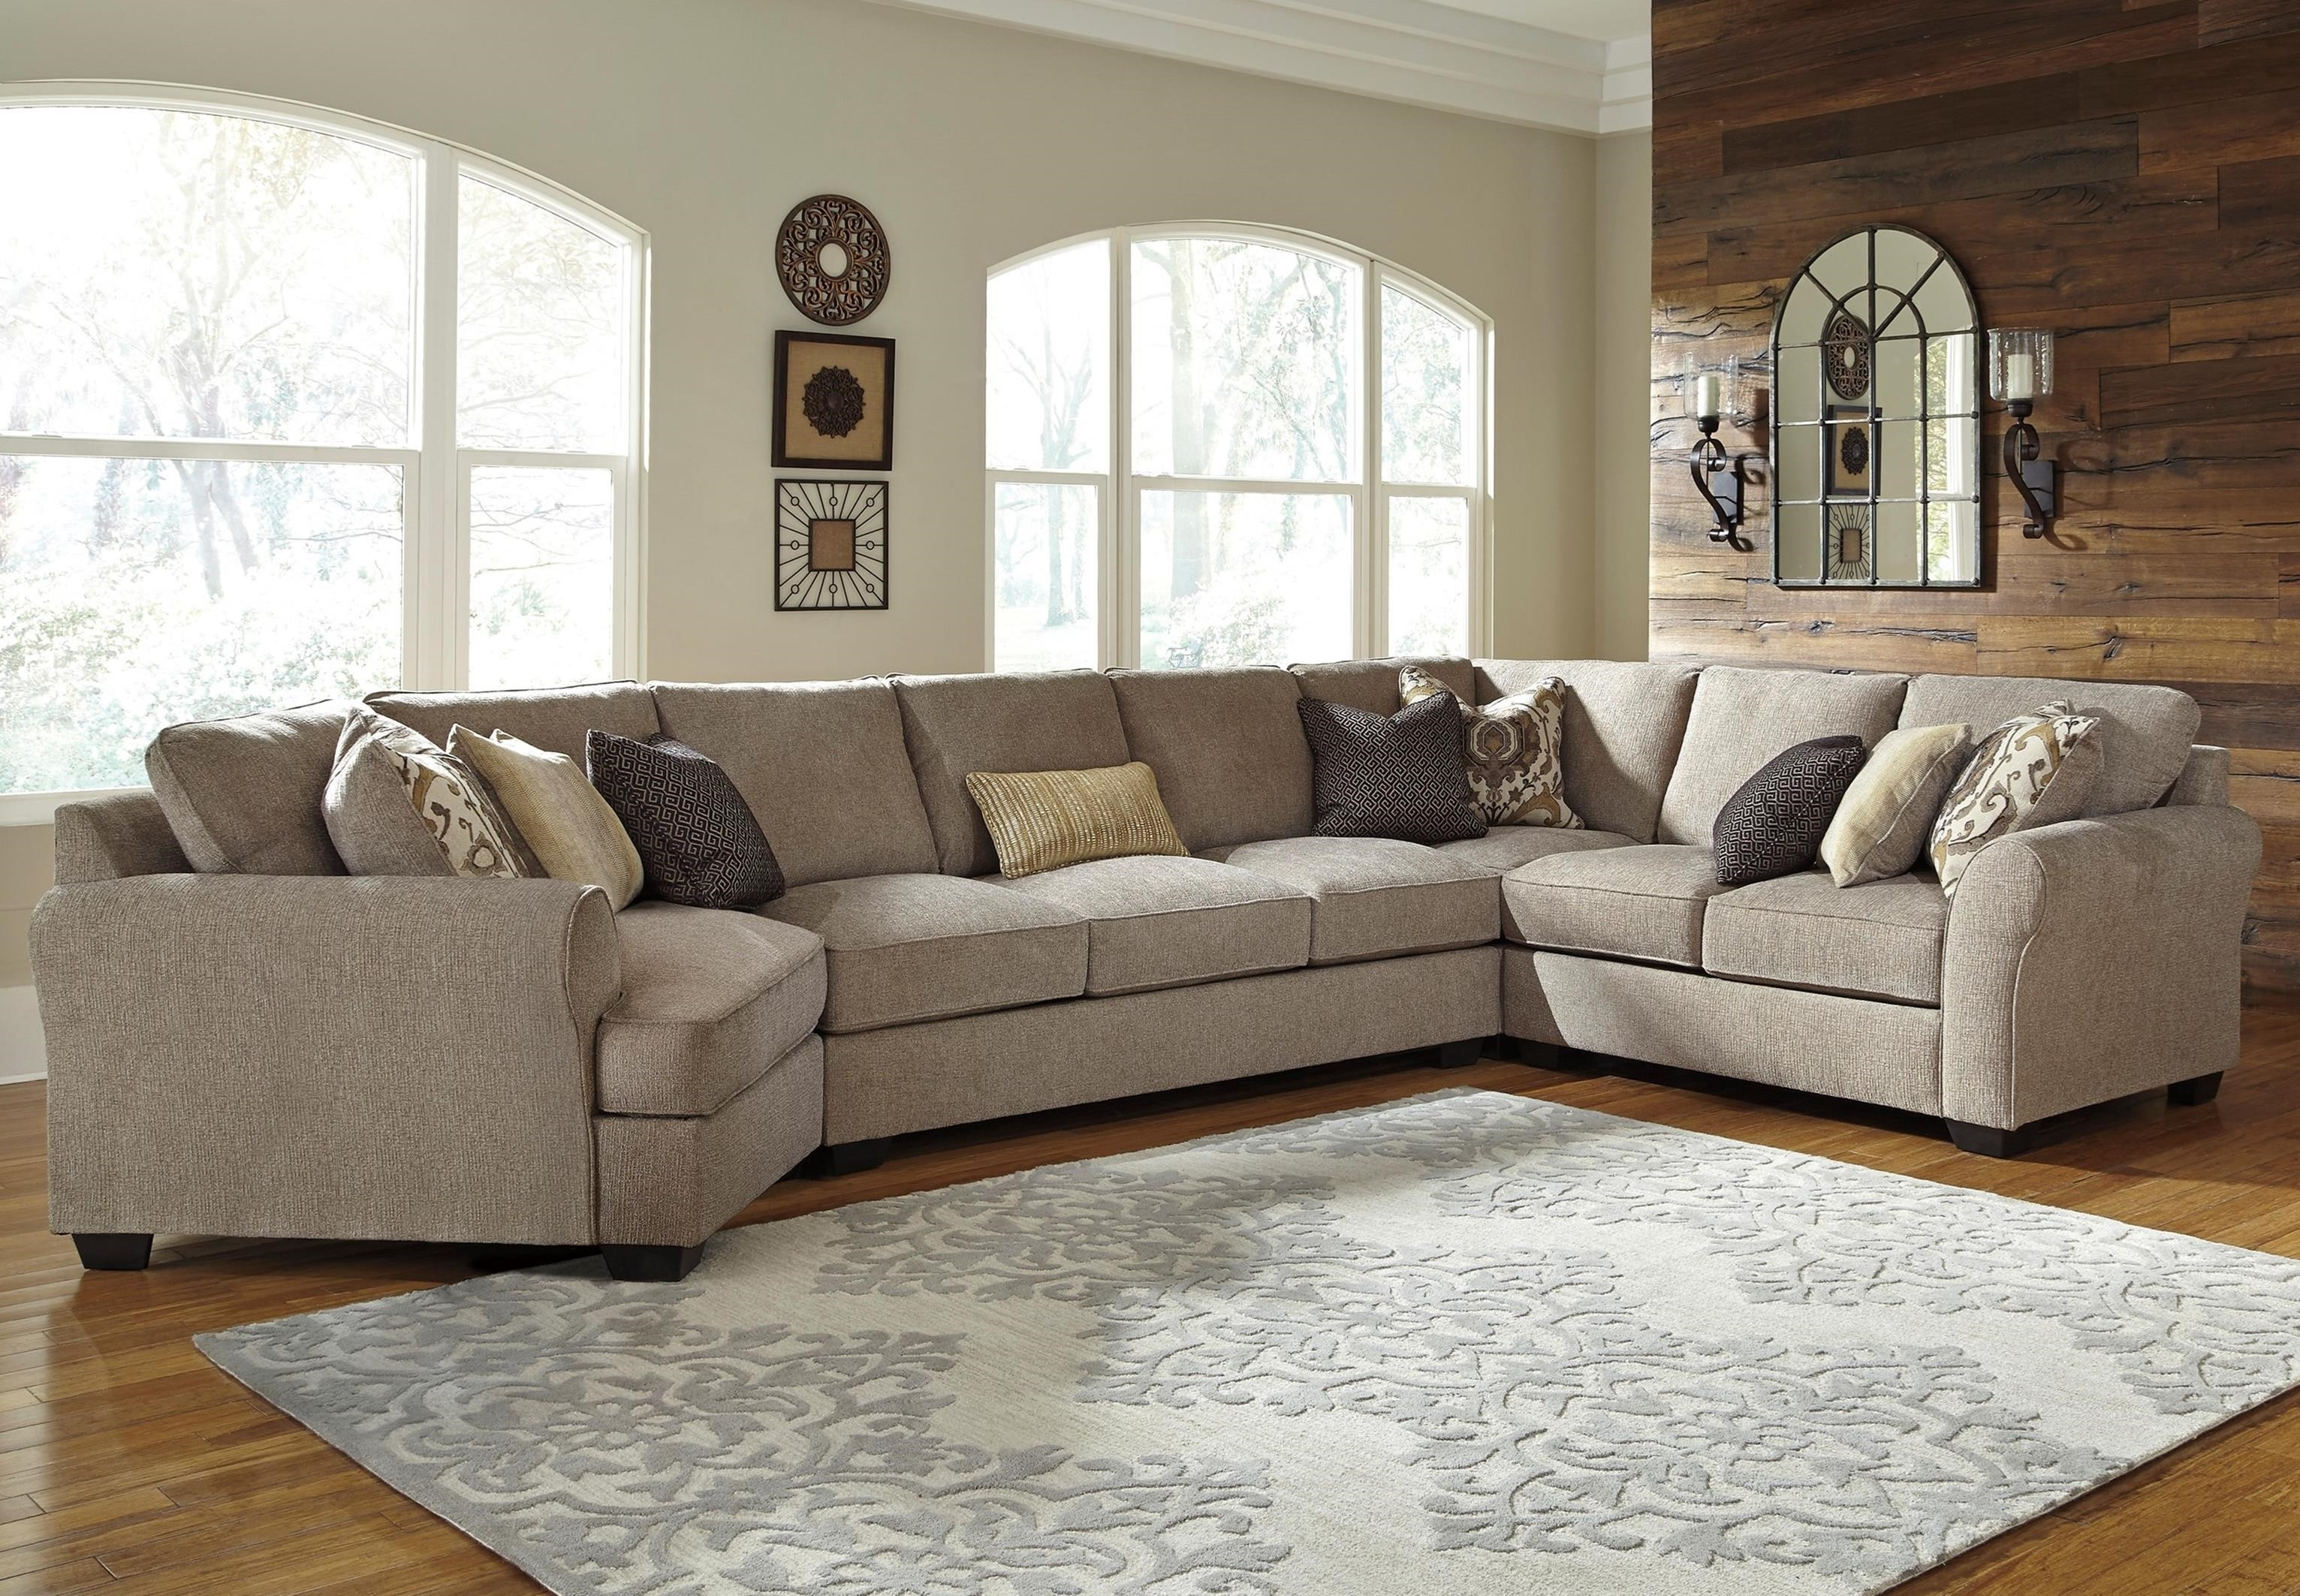 Benchcraft Pantomine 4-Piece Sectional With Left Cuddler & Armless regarding Sectional Sofas With Cuddler (Image 1 of 10)